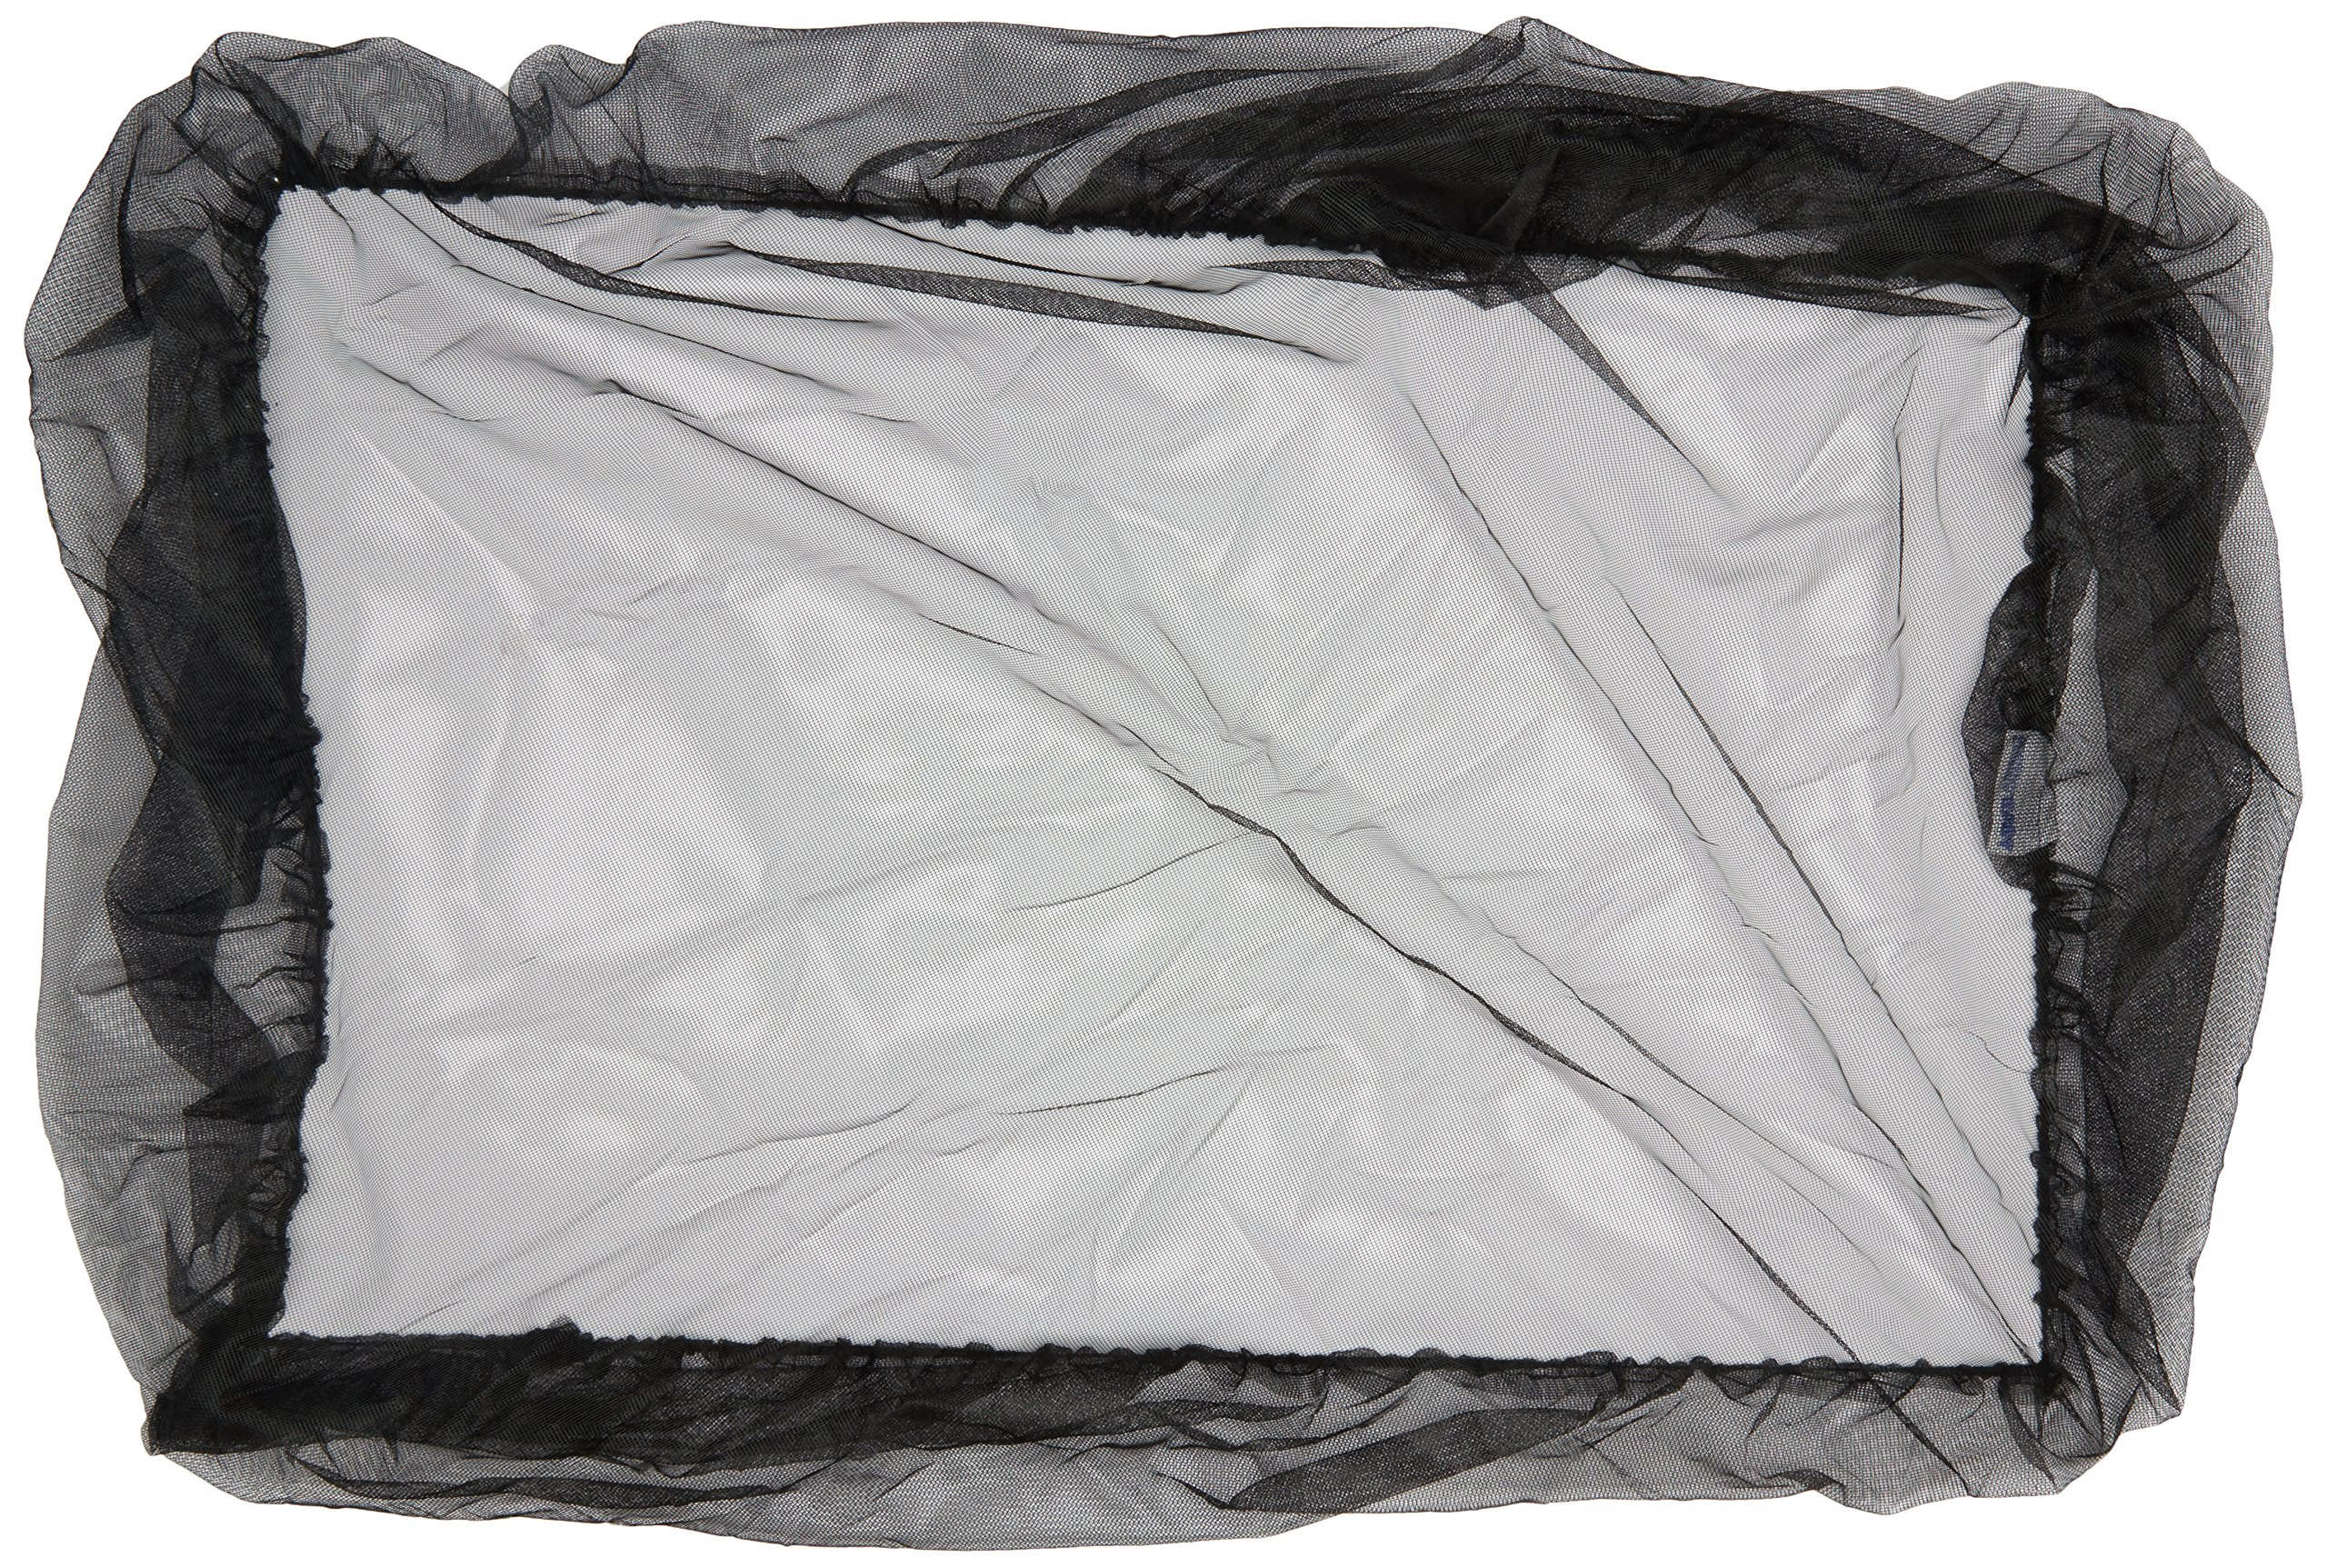 Sunnybaby 10367 Mosquito net for travelling bed - Black sunnybaby Suitable for all standard travel cots. Especially durable and tightly Protects your child keeping annoying mosquitoes, wasps and other insects out. 1